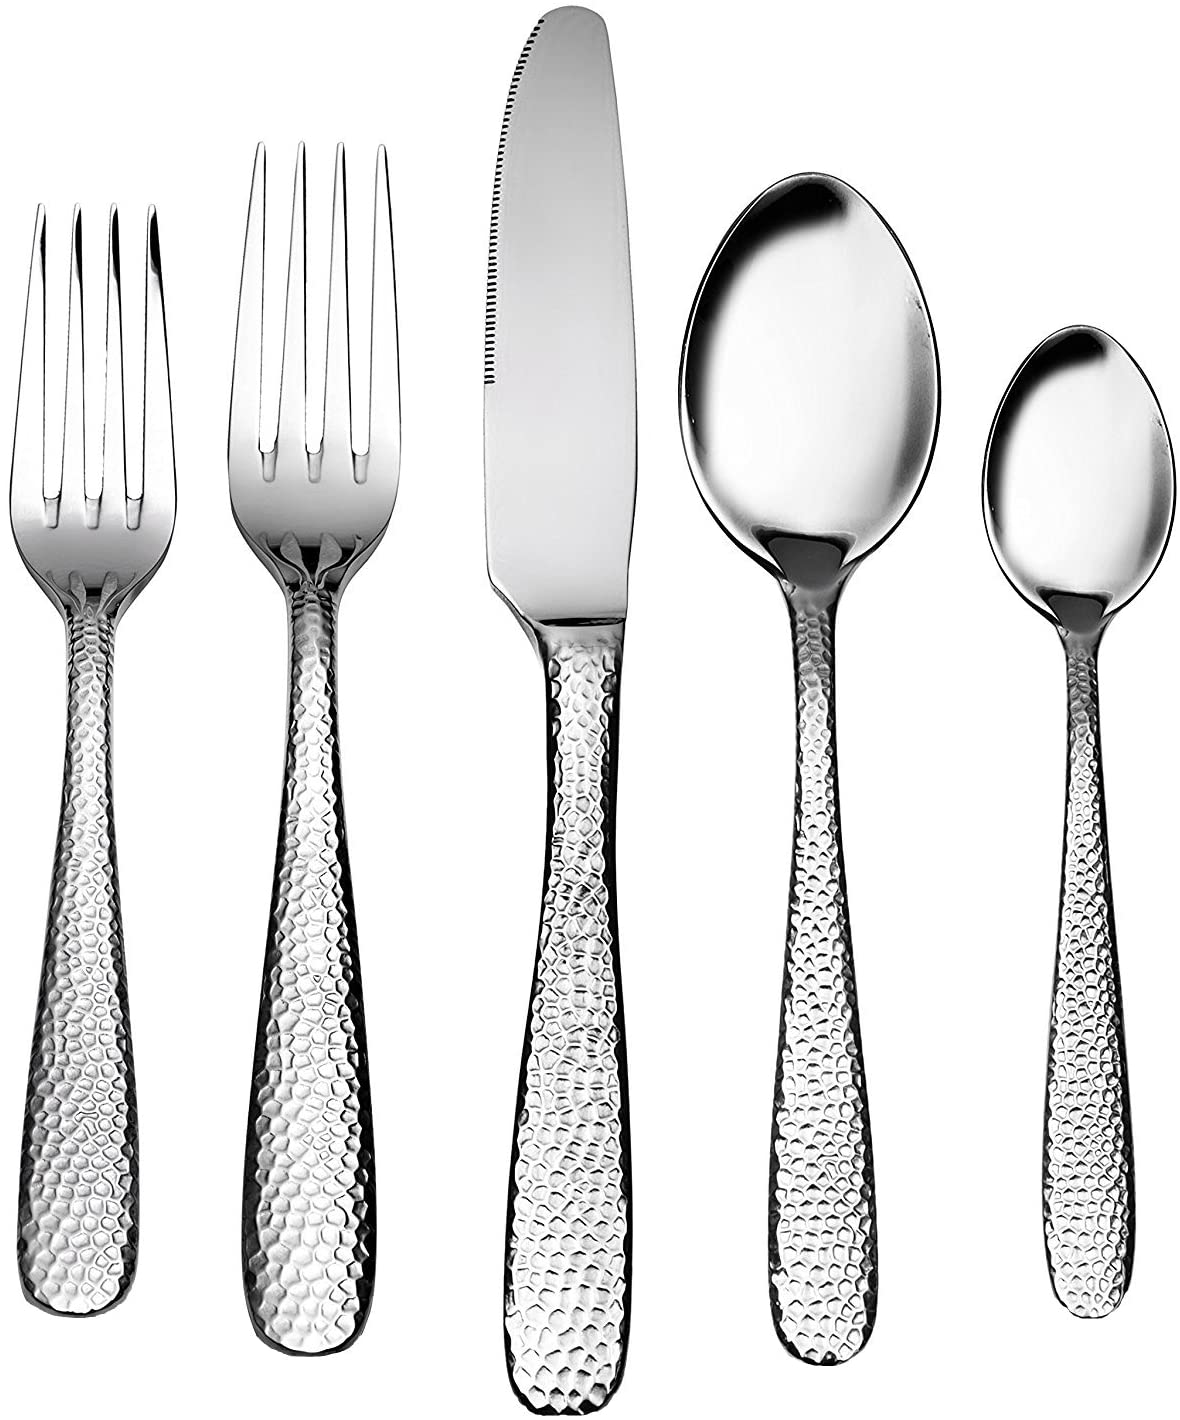 Silverware Set, 20 Pcs Flatware Set,Hammer Point Extra thick Heavy duty 18/10 Stainless Steel silverware, Service for 4